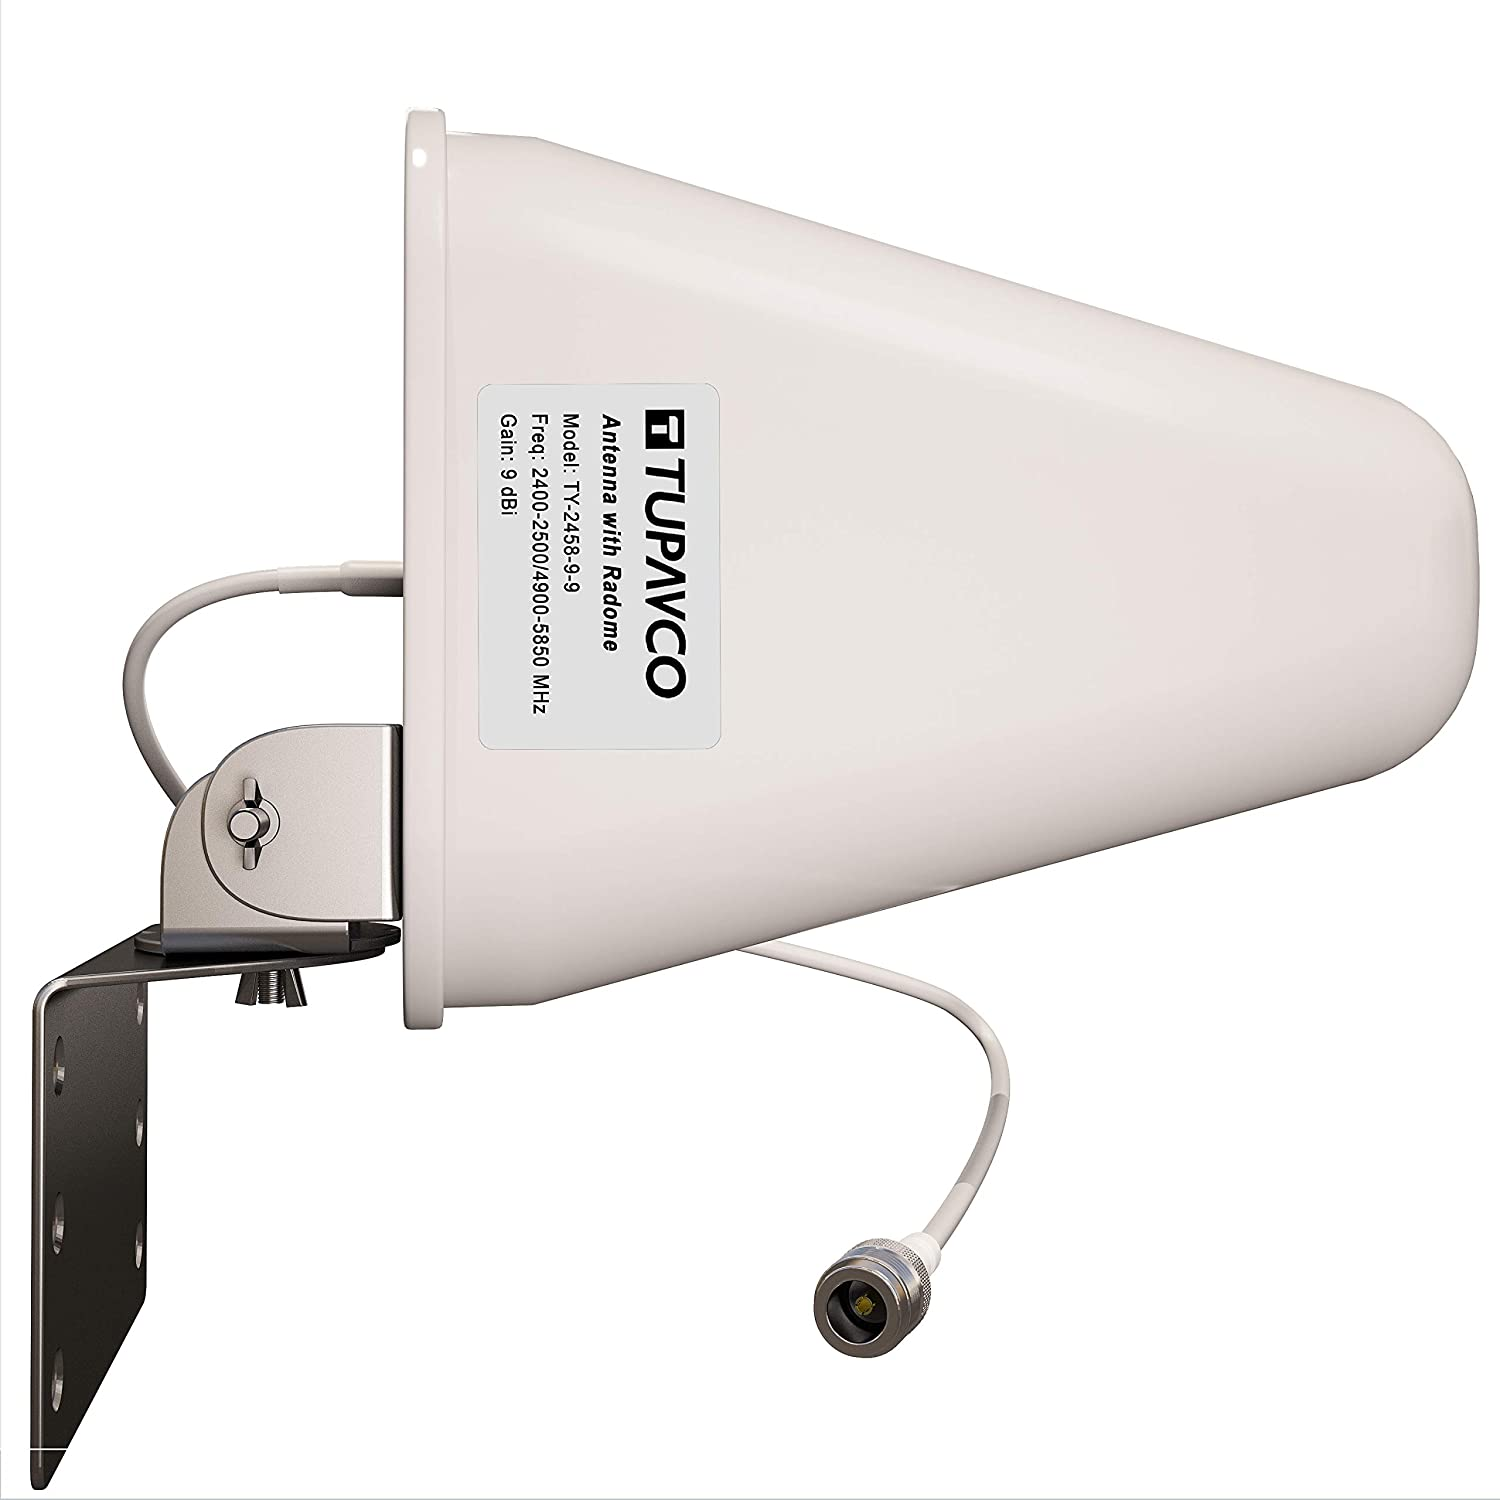 Tupavco DB541 WiFi Antenna Dual Band and Boston Mall - 2.4GHz 5.8GHz 5GHz Super sale period limited